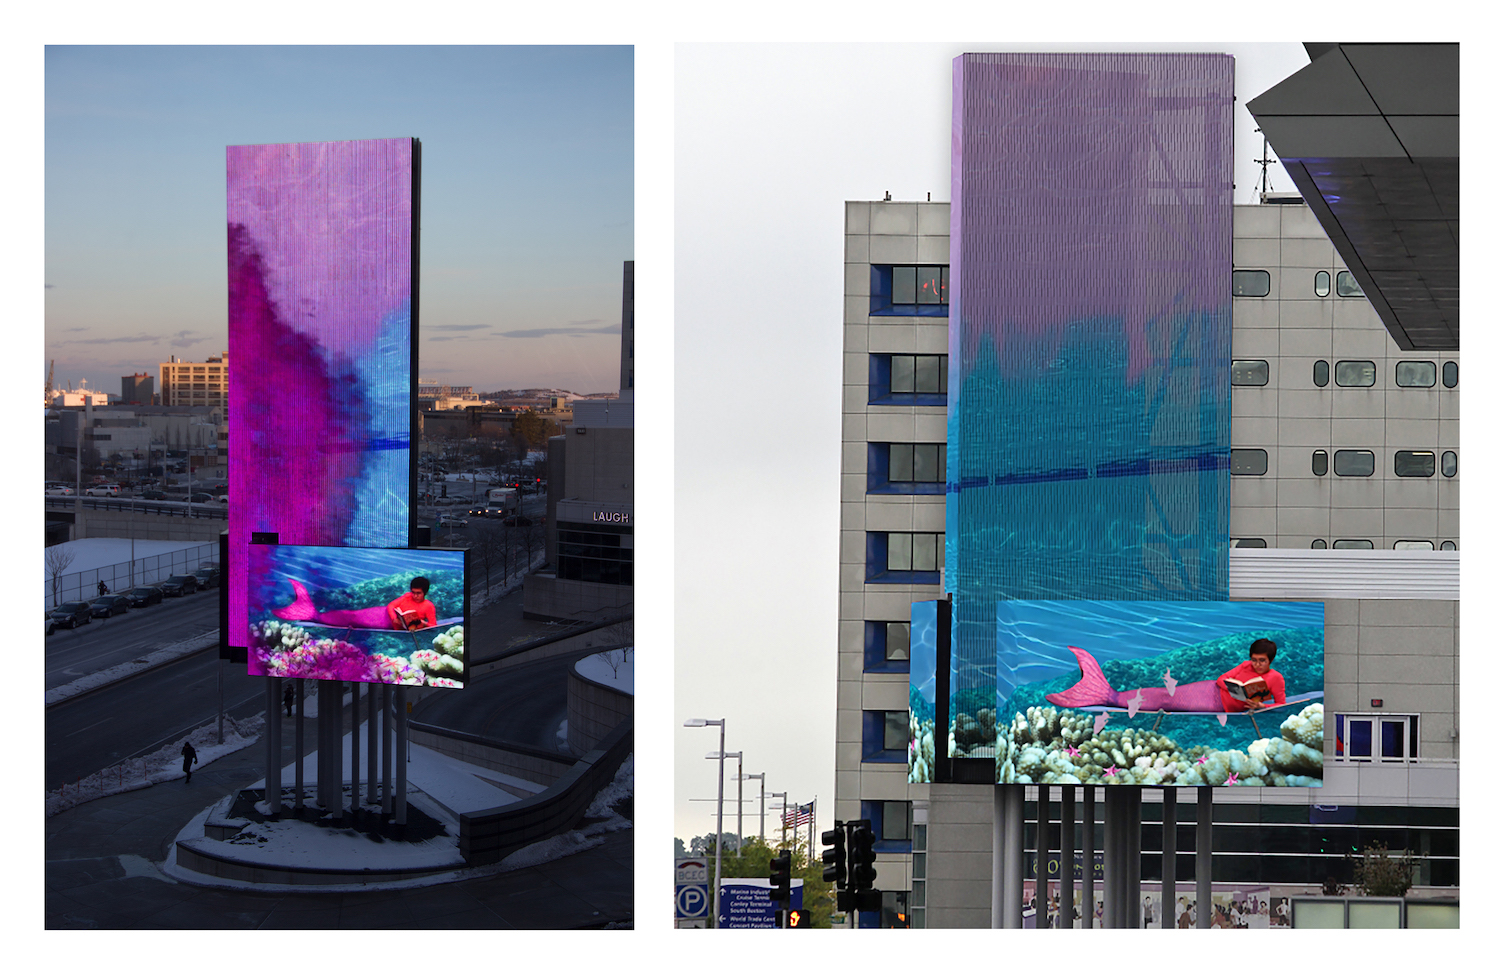 One Girl's Fantasy , Public art commission for Art on the Marquee, seven screen video installation,80 x 24 feet,on display March 16, 2017 – April 19, 2017